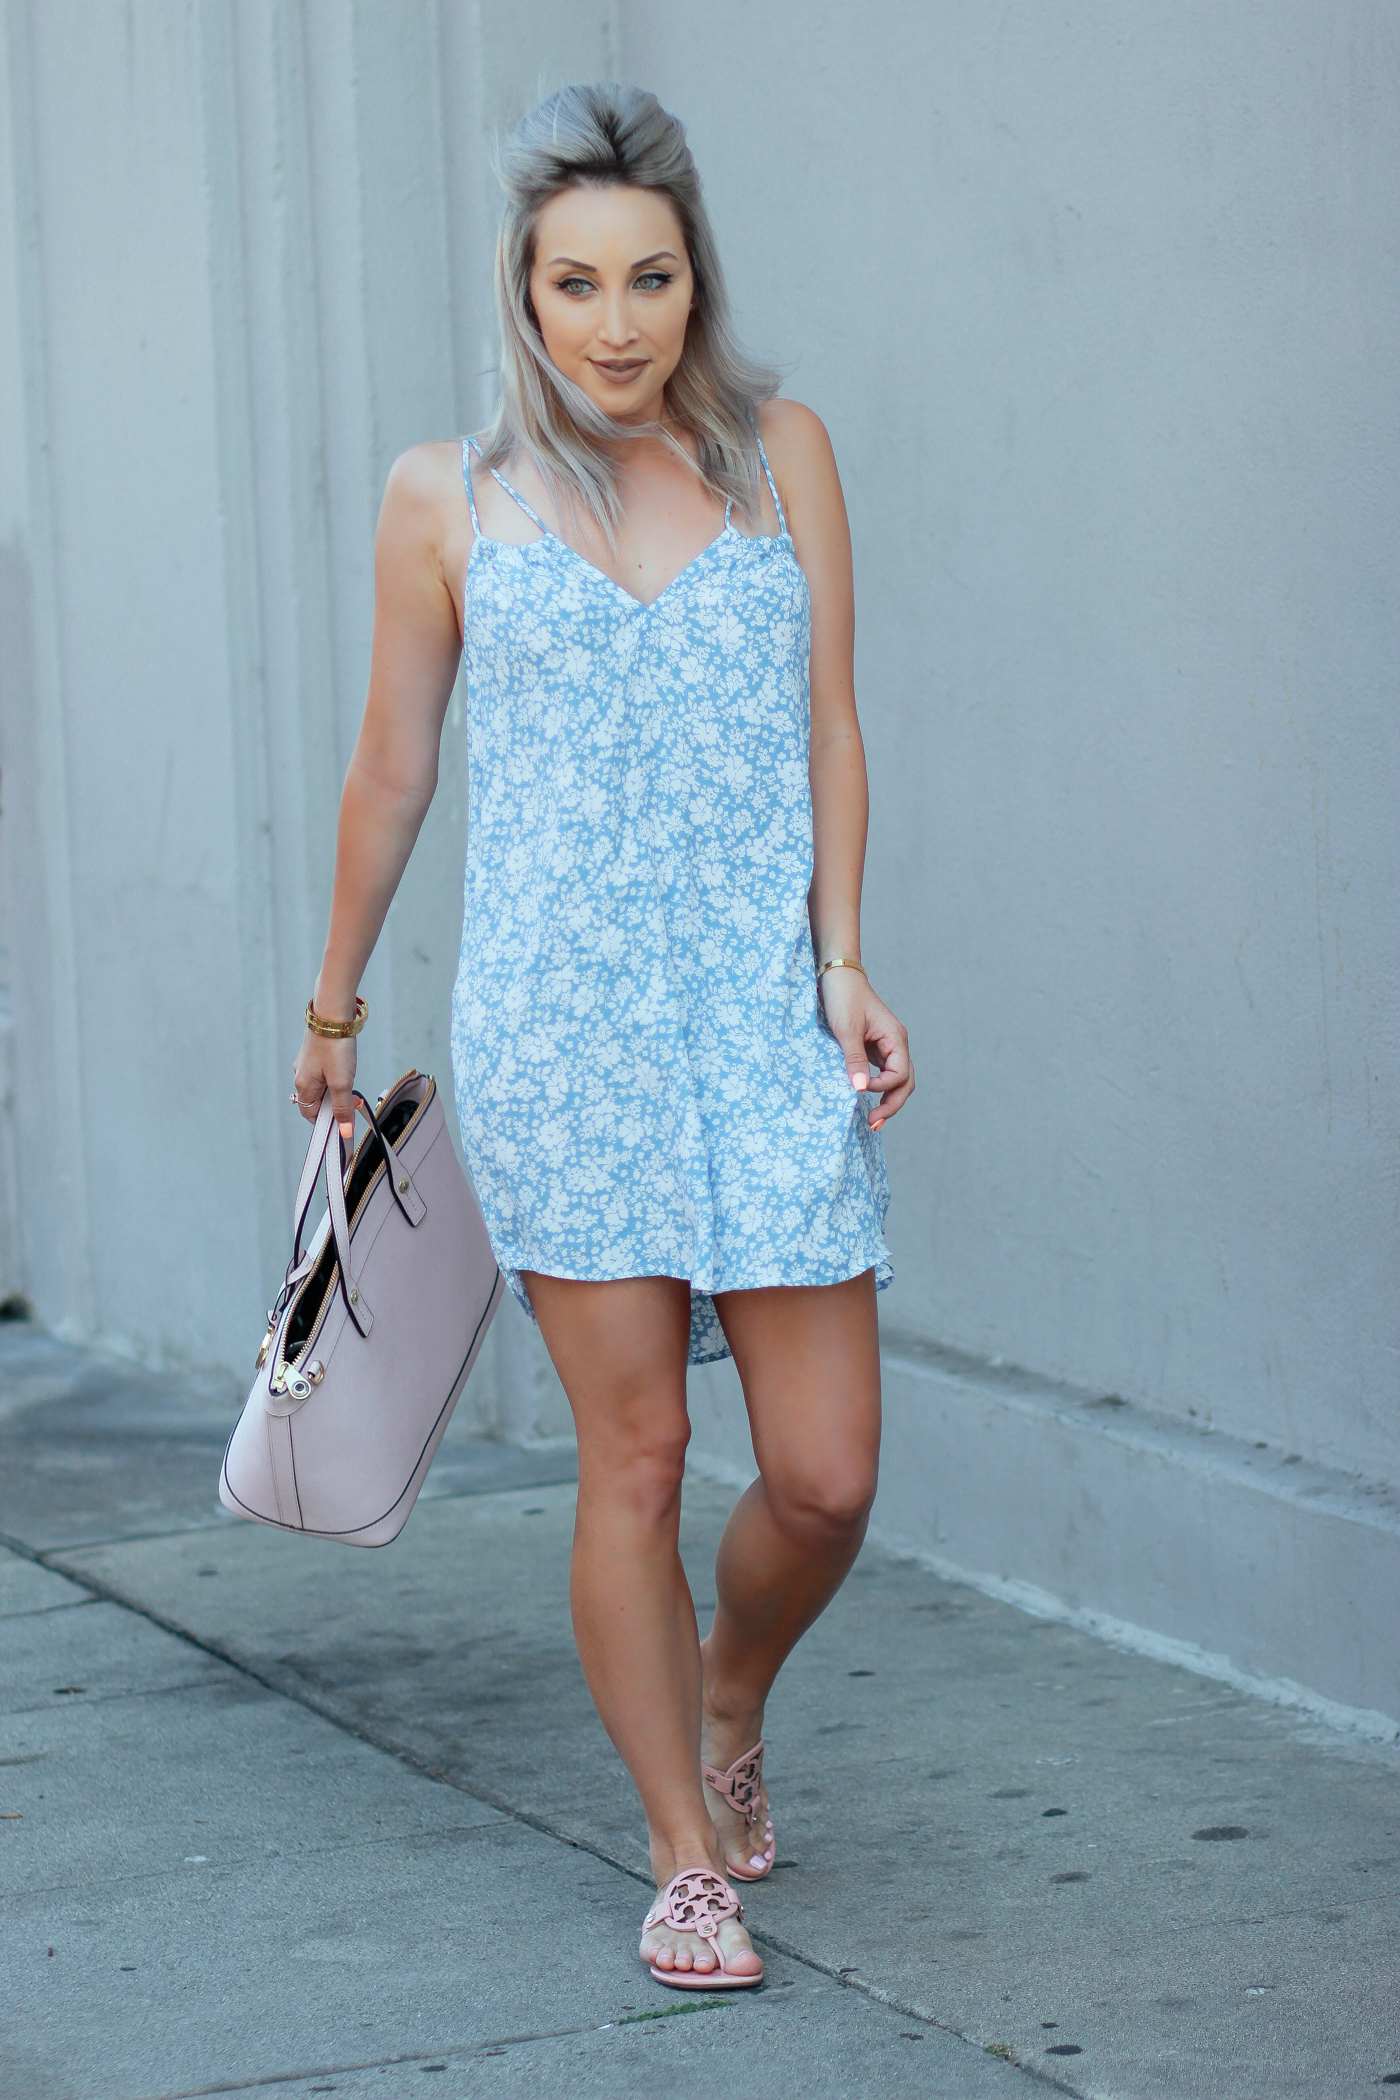 Blondie in the City | Airy Blue Summer Dress | Clay Pink Tory Burch Sandals | Pink Henri Bendel Bag